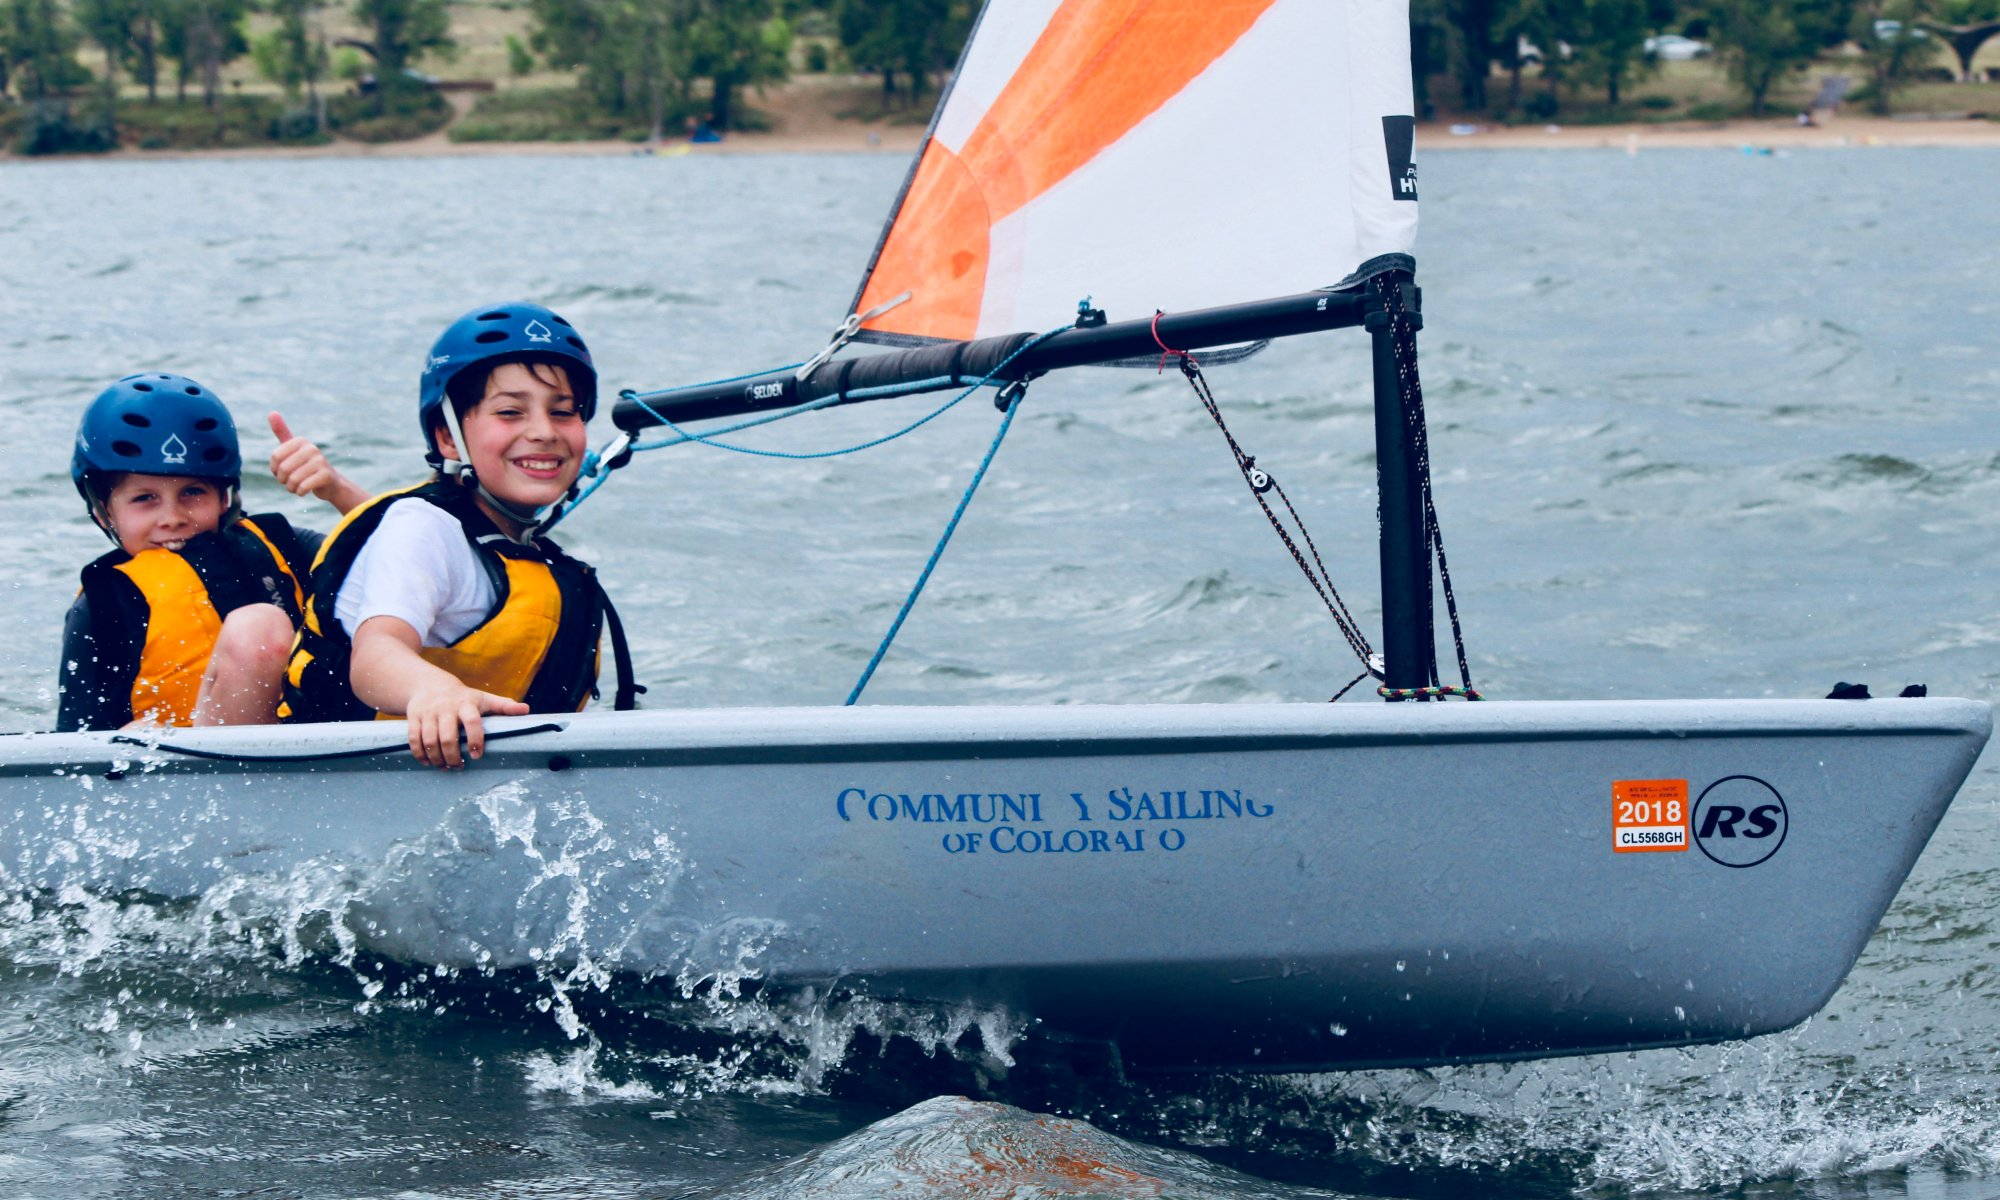 community sailing colorado image